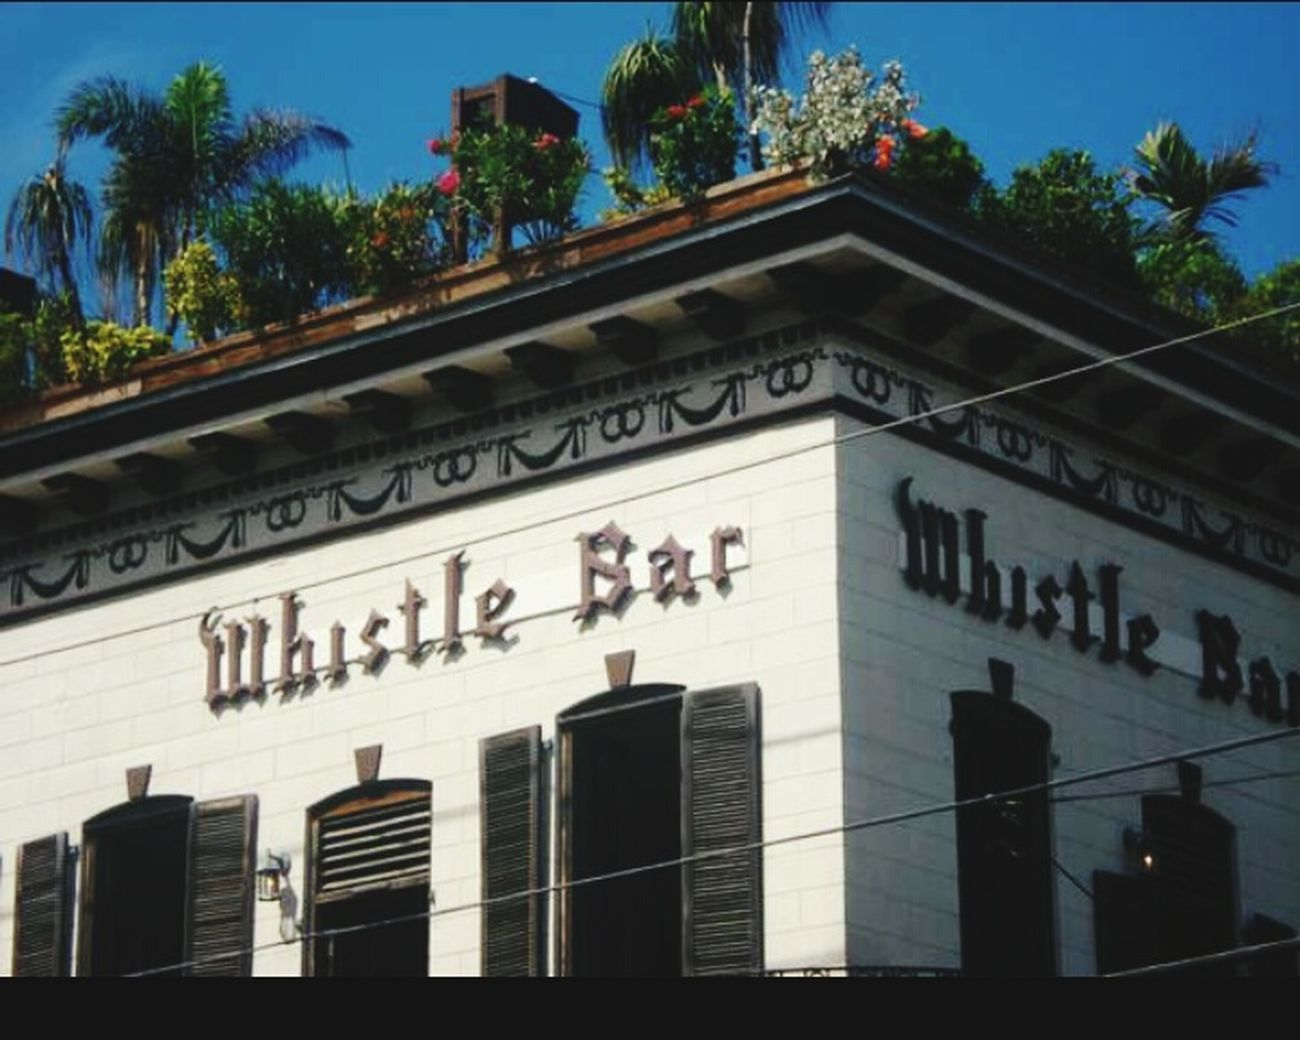 Whistle Bar Whistle Bar Garden On Roof Clothing Optional Bar Key West Florida Outdoor Photography Sign Love It Here